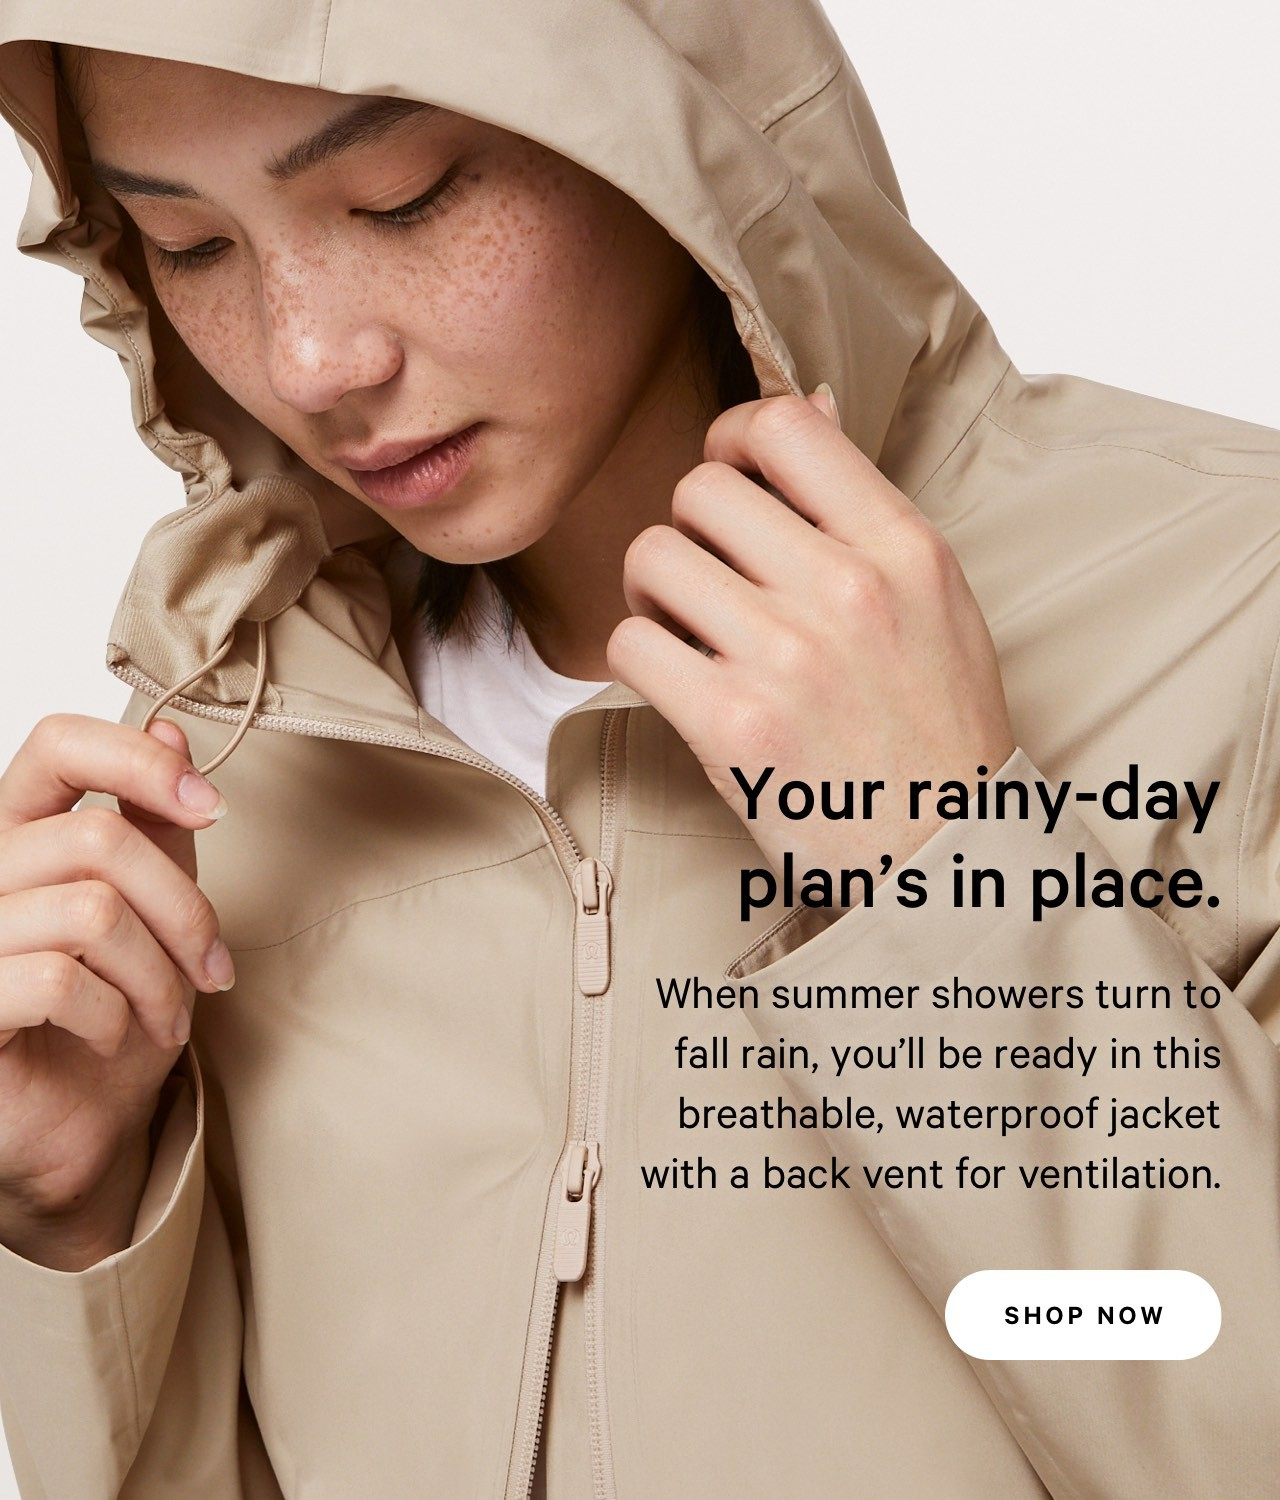 Your rainy-day plan's in place. SHOP NOW